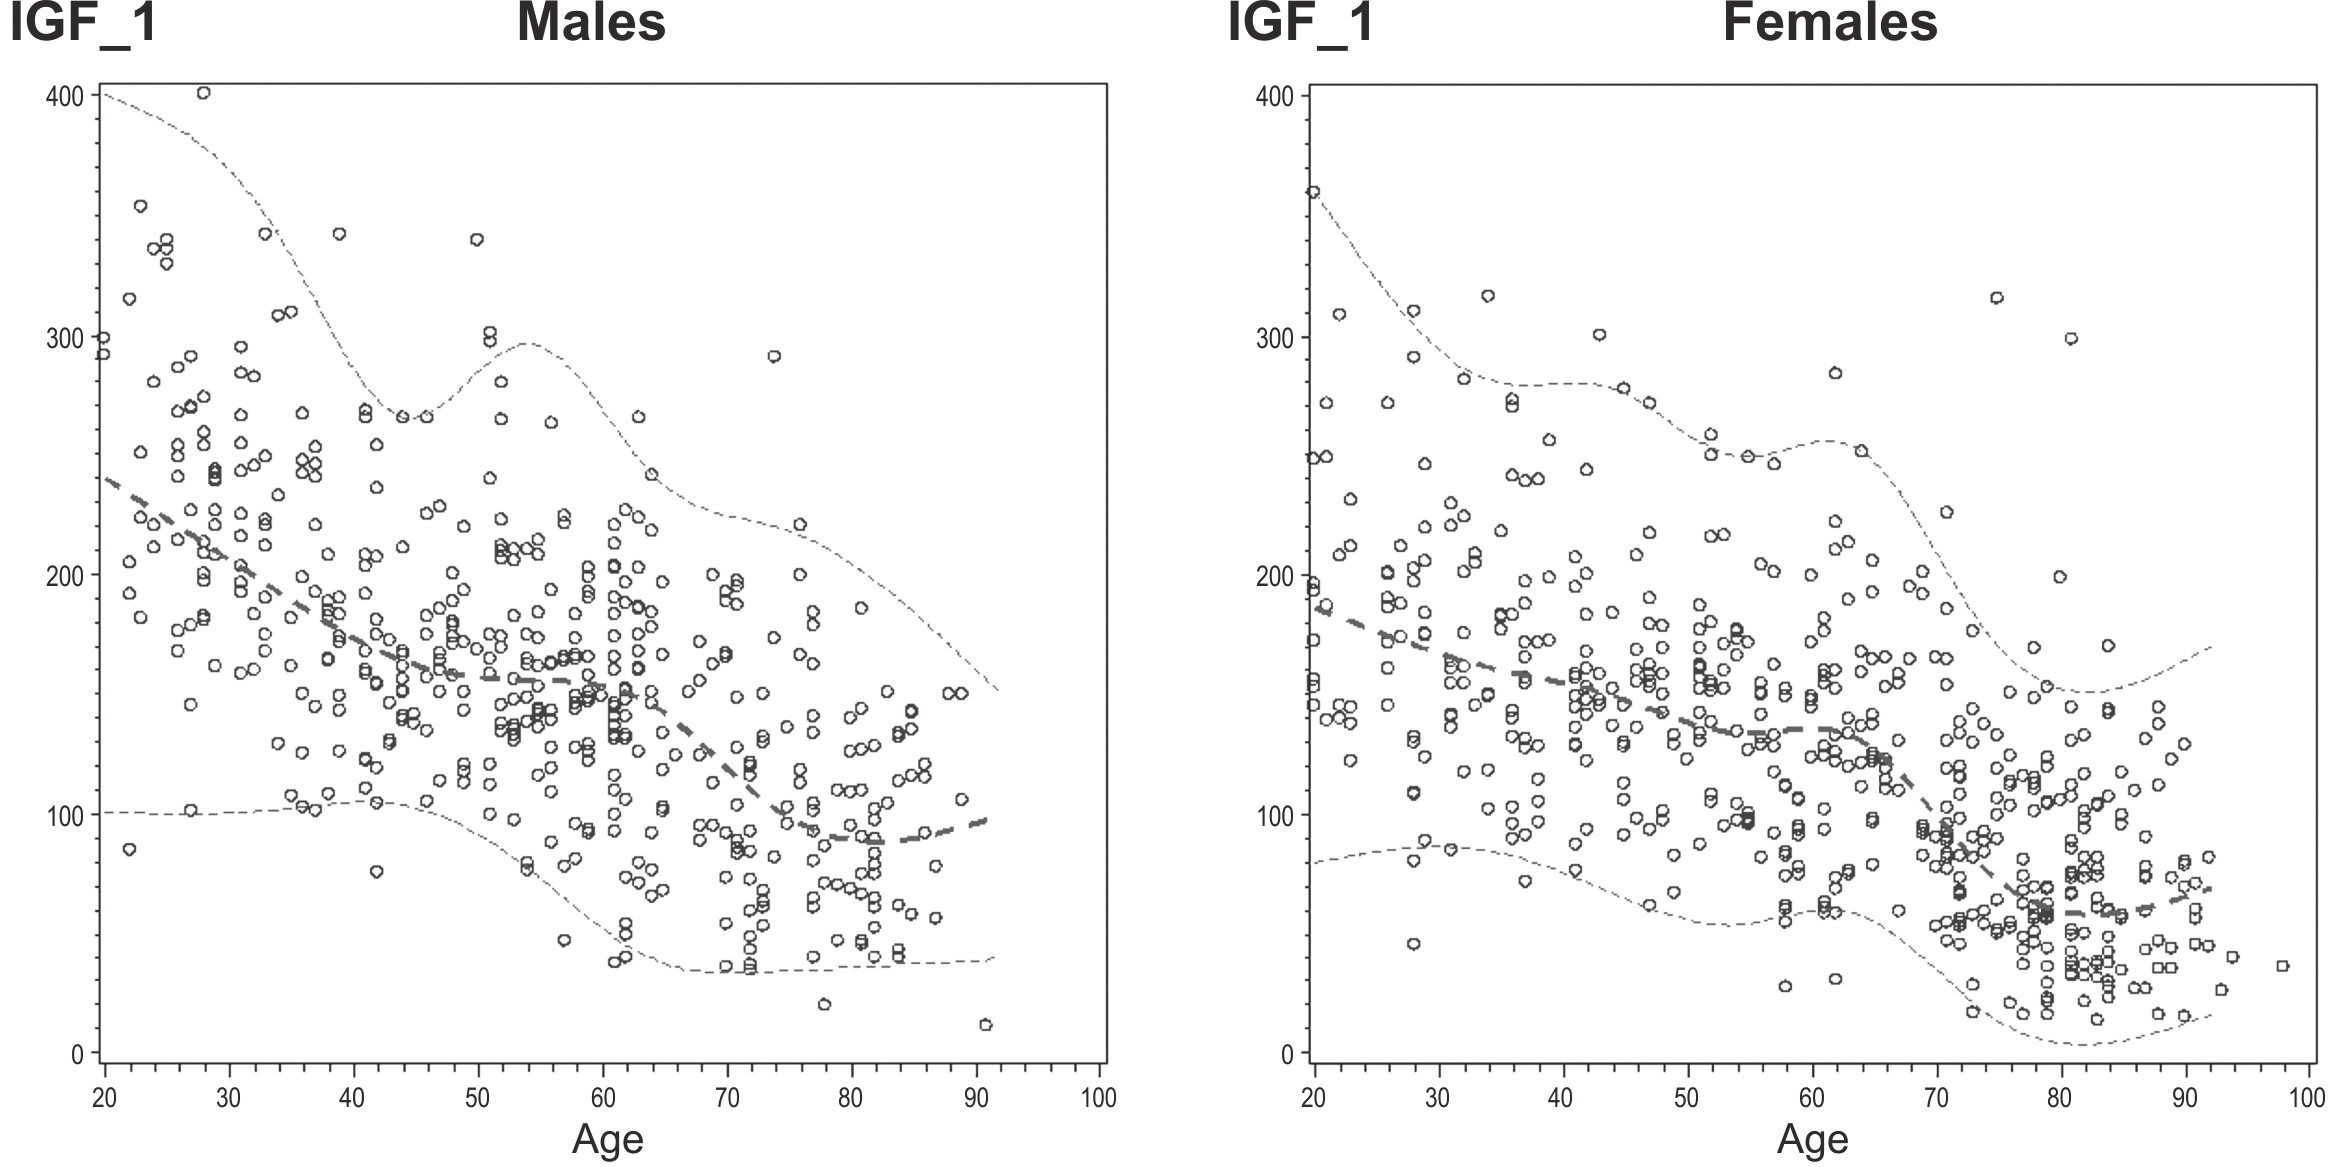 Fig. 2. IGF1 – Example of Non-parametric Approach by Gender